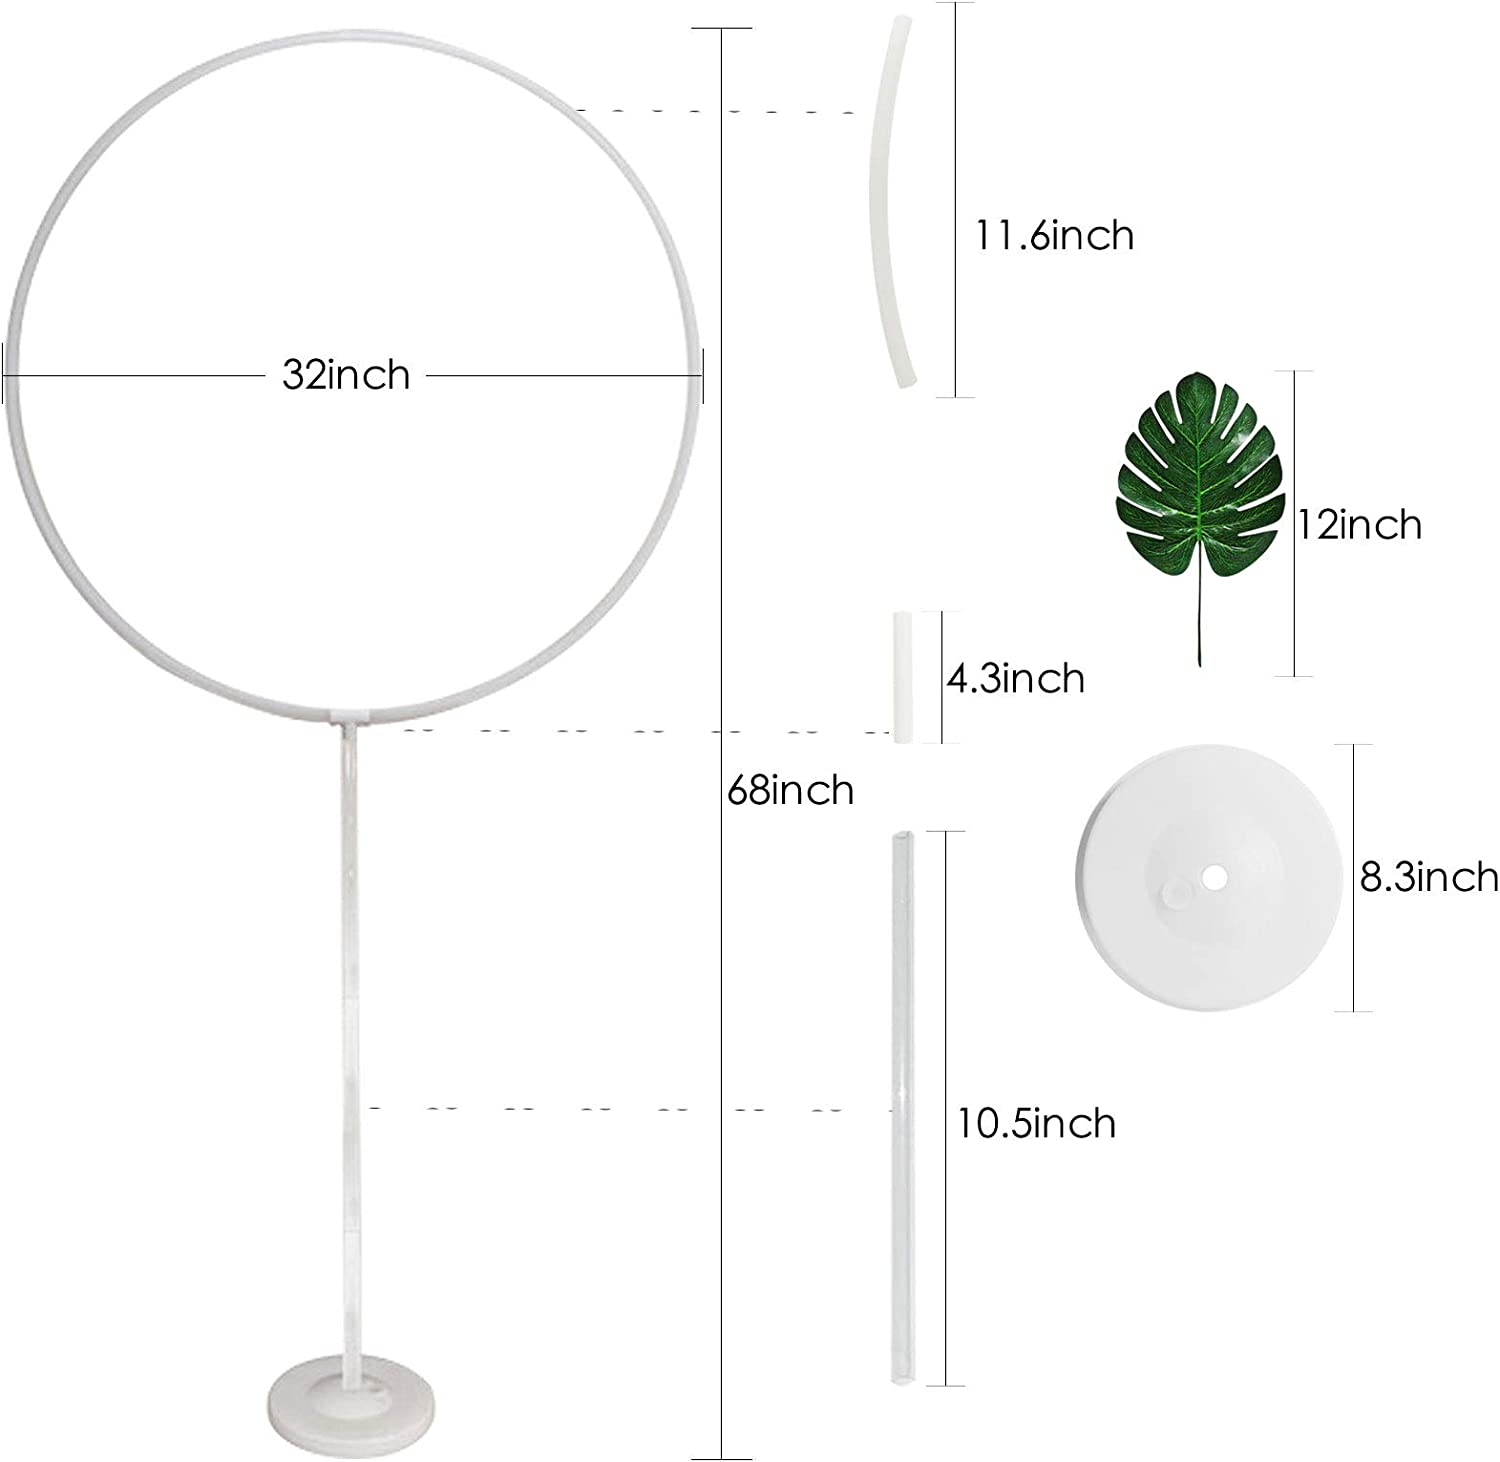 Strip /& 5 Packs of Accessories Included Balloon Column Base Balloon Tie Tool Pole Elecrainbow 67 Inches Height Round Circle Balloon Arch Frame Stand Kit for Party Decorations Balloon Clip Rings